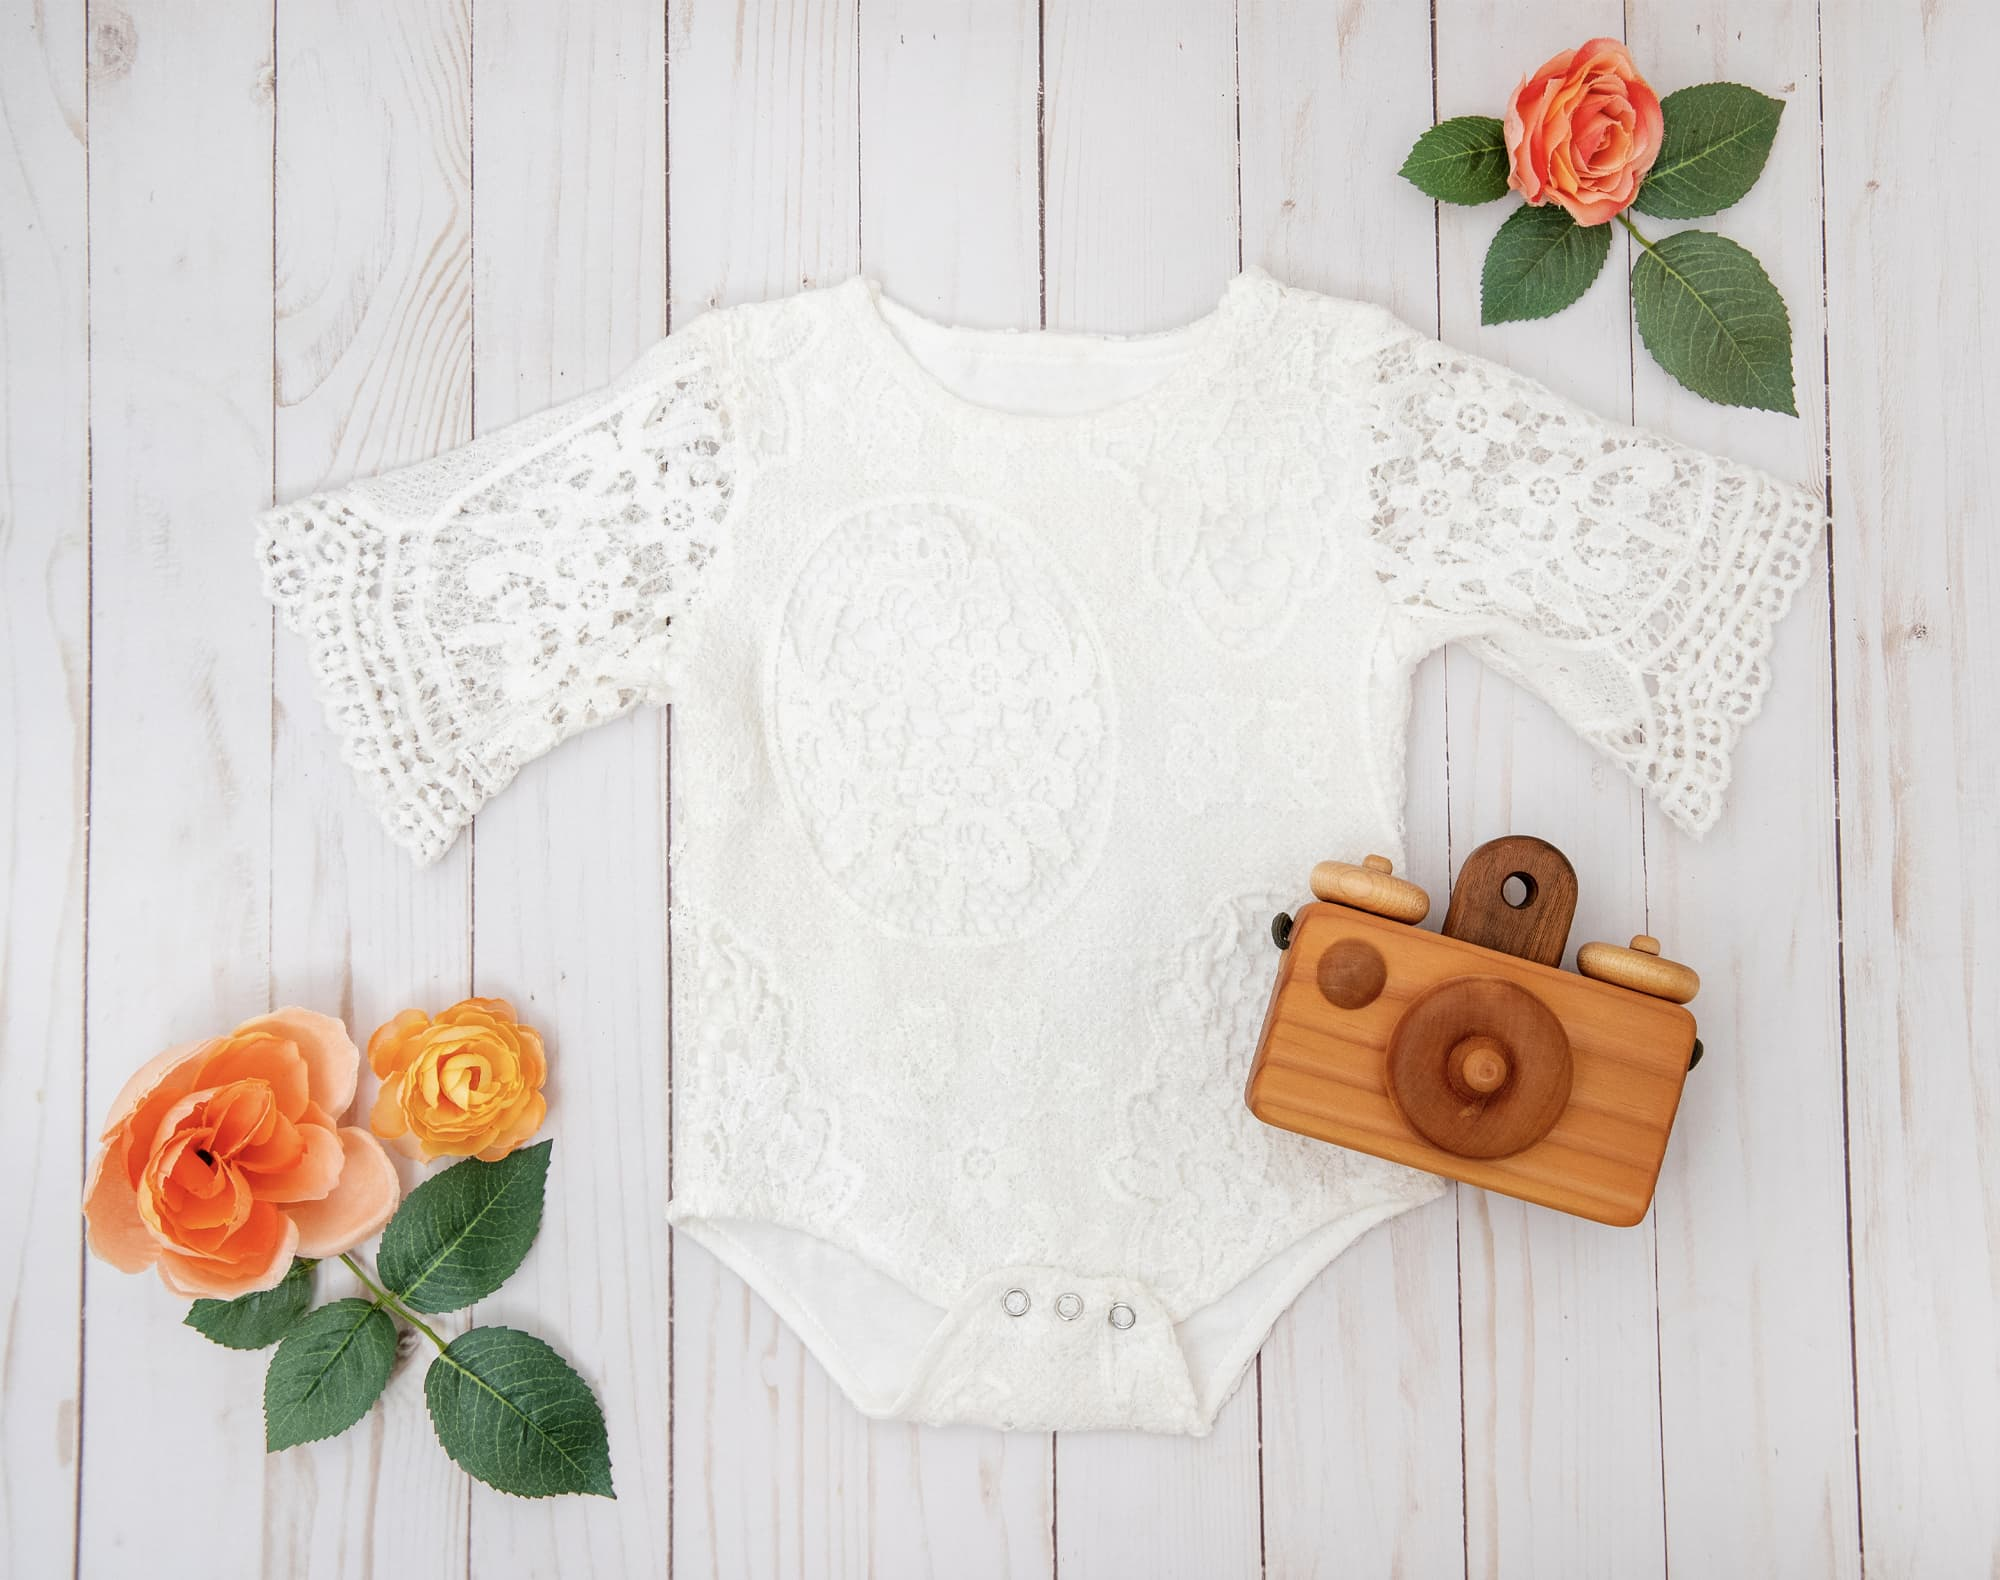 lace baby outfit flat lay with wooden camera